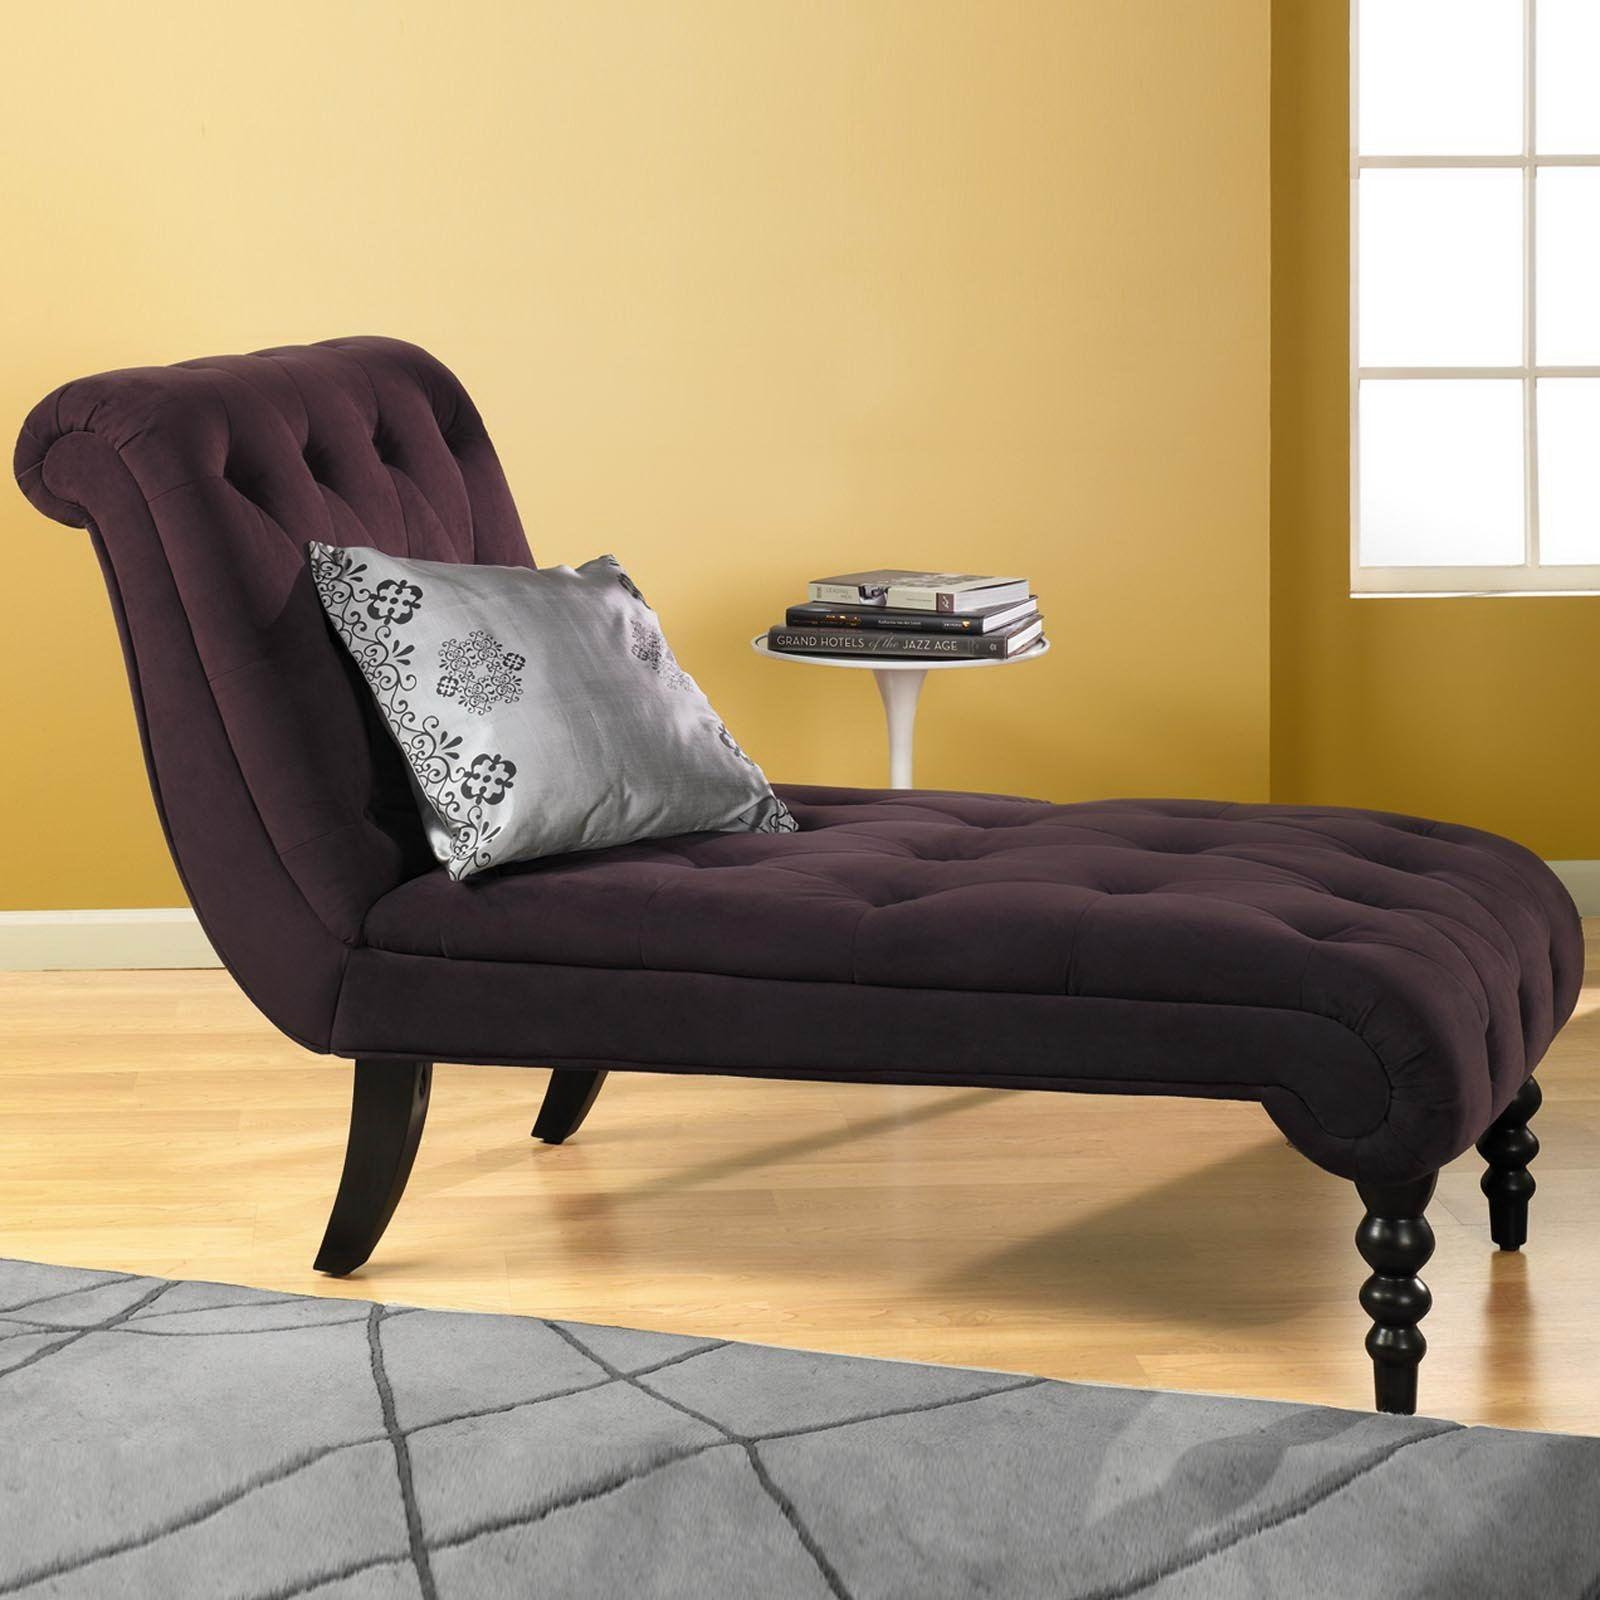 20 collection of chaise sofa chairs sofa ideas for Affordable chaise